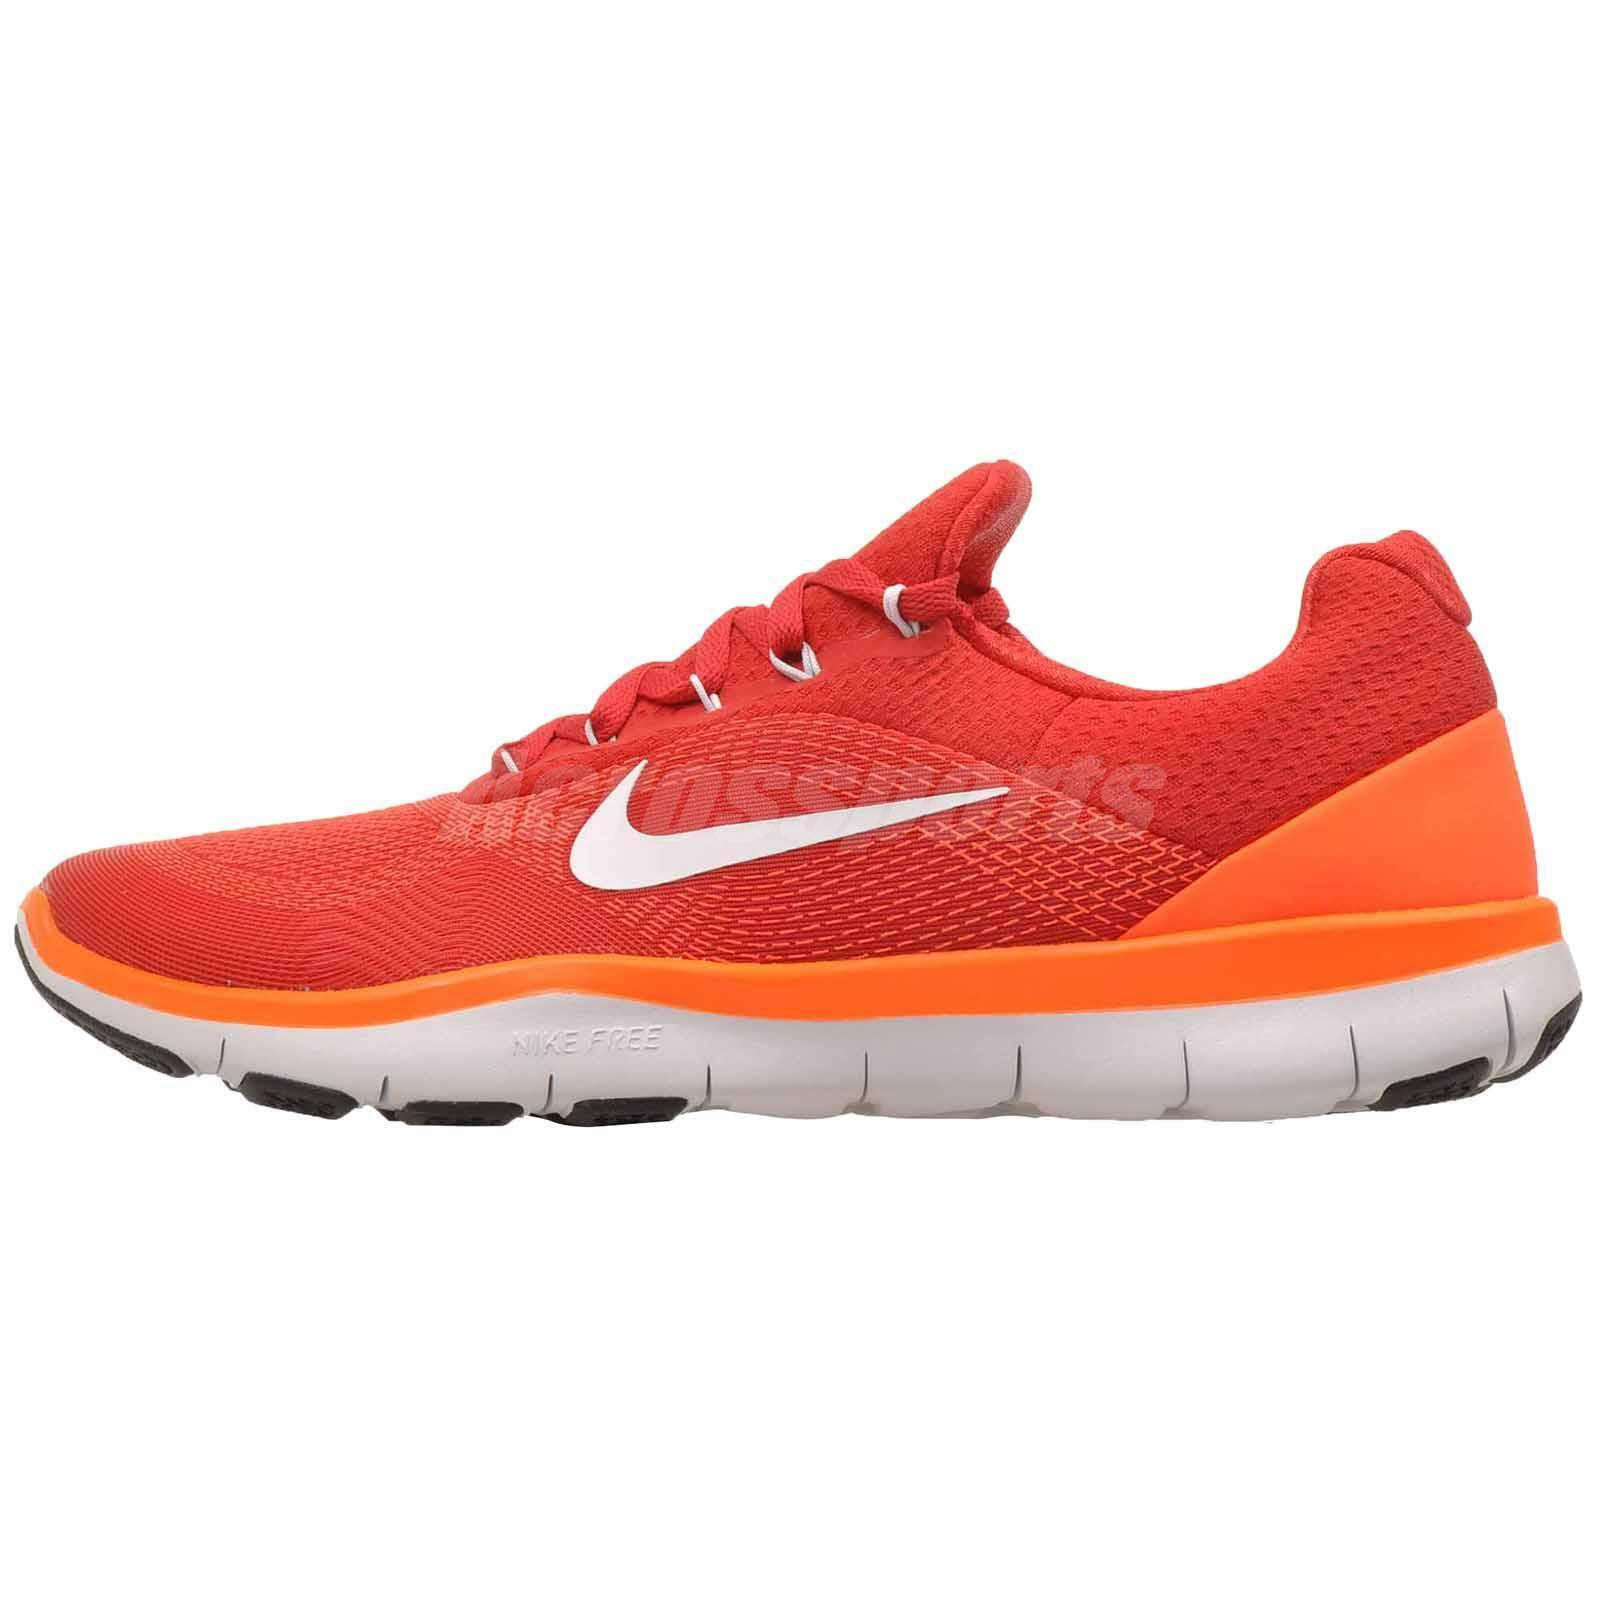 Nike Free Trainer V7 Cross Training Mens shoes Crimson Red 898053-800